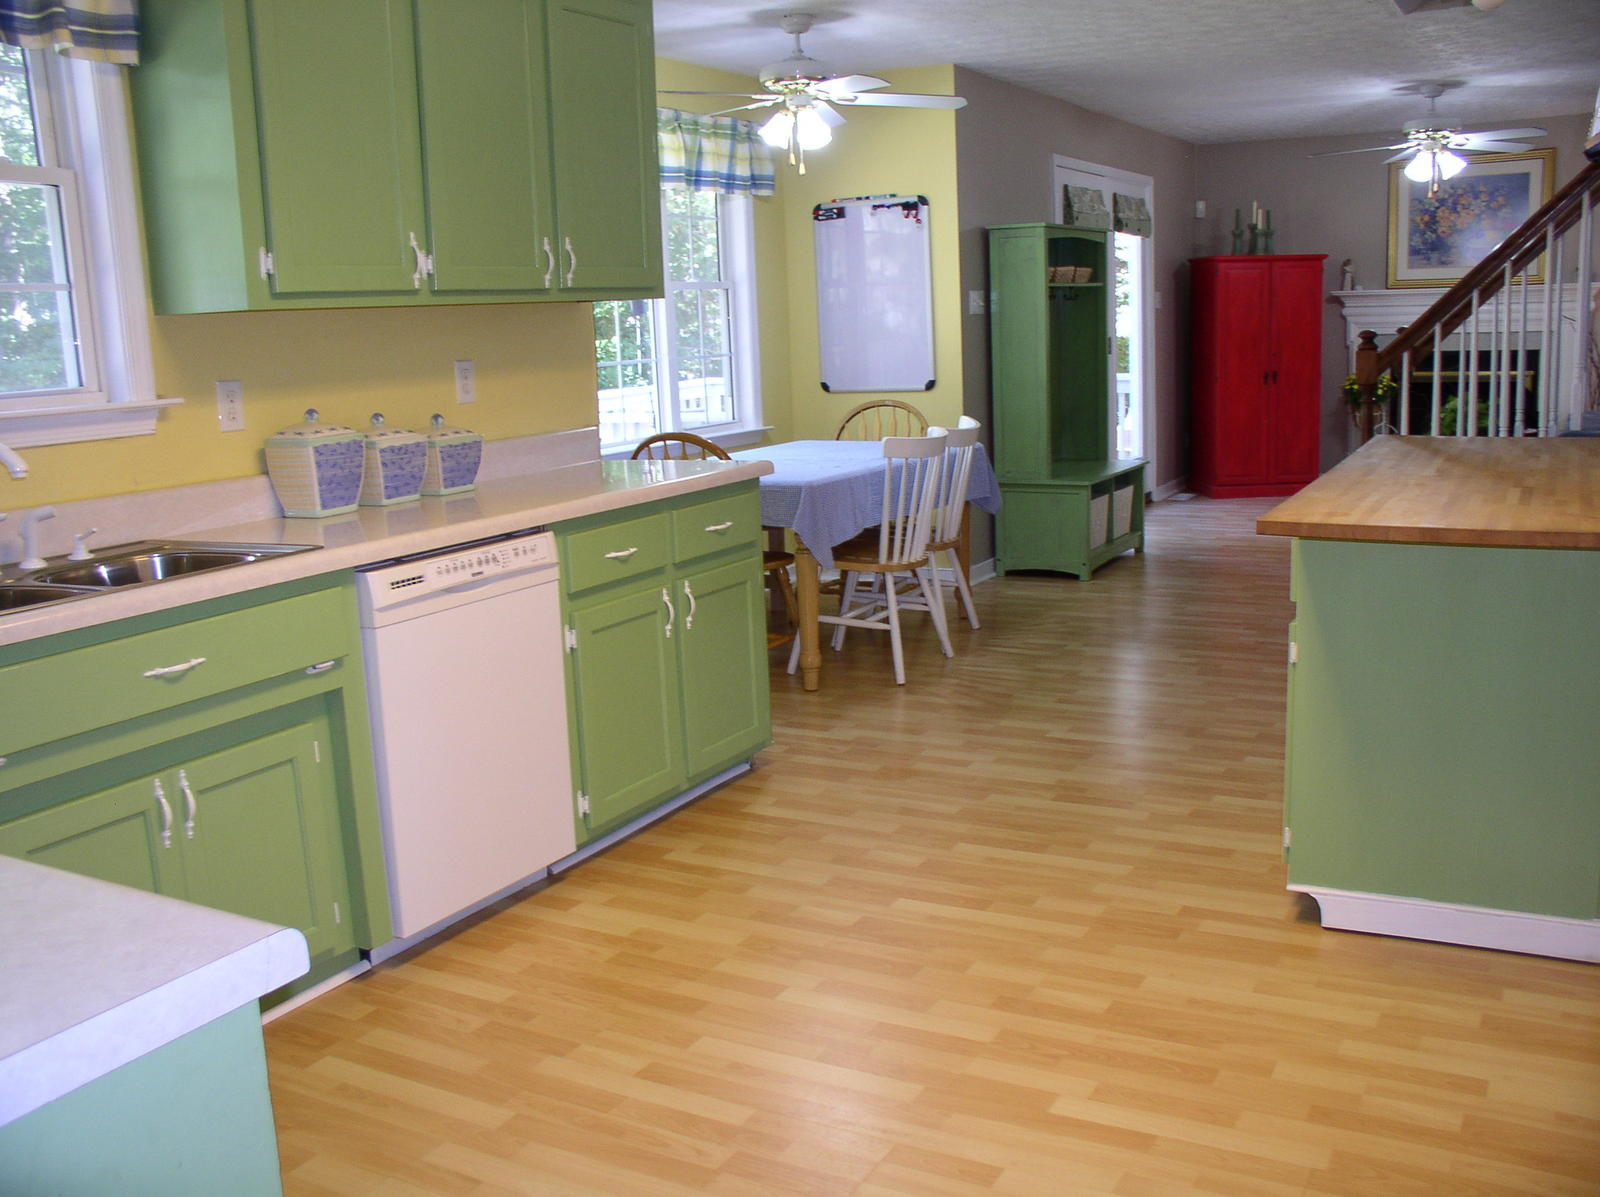 Painting your kitchen cabinets painting tips from the pros for Painted cabinets in kitchen